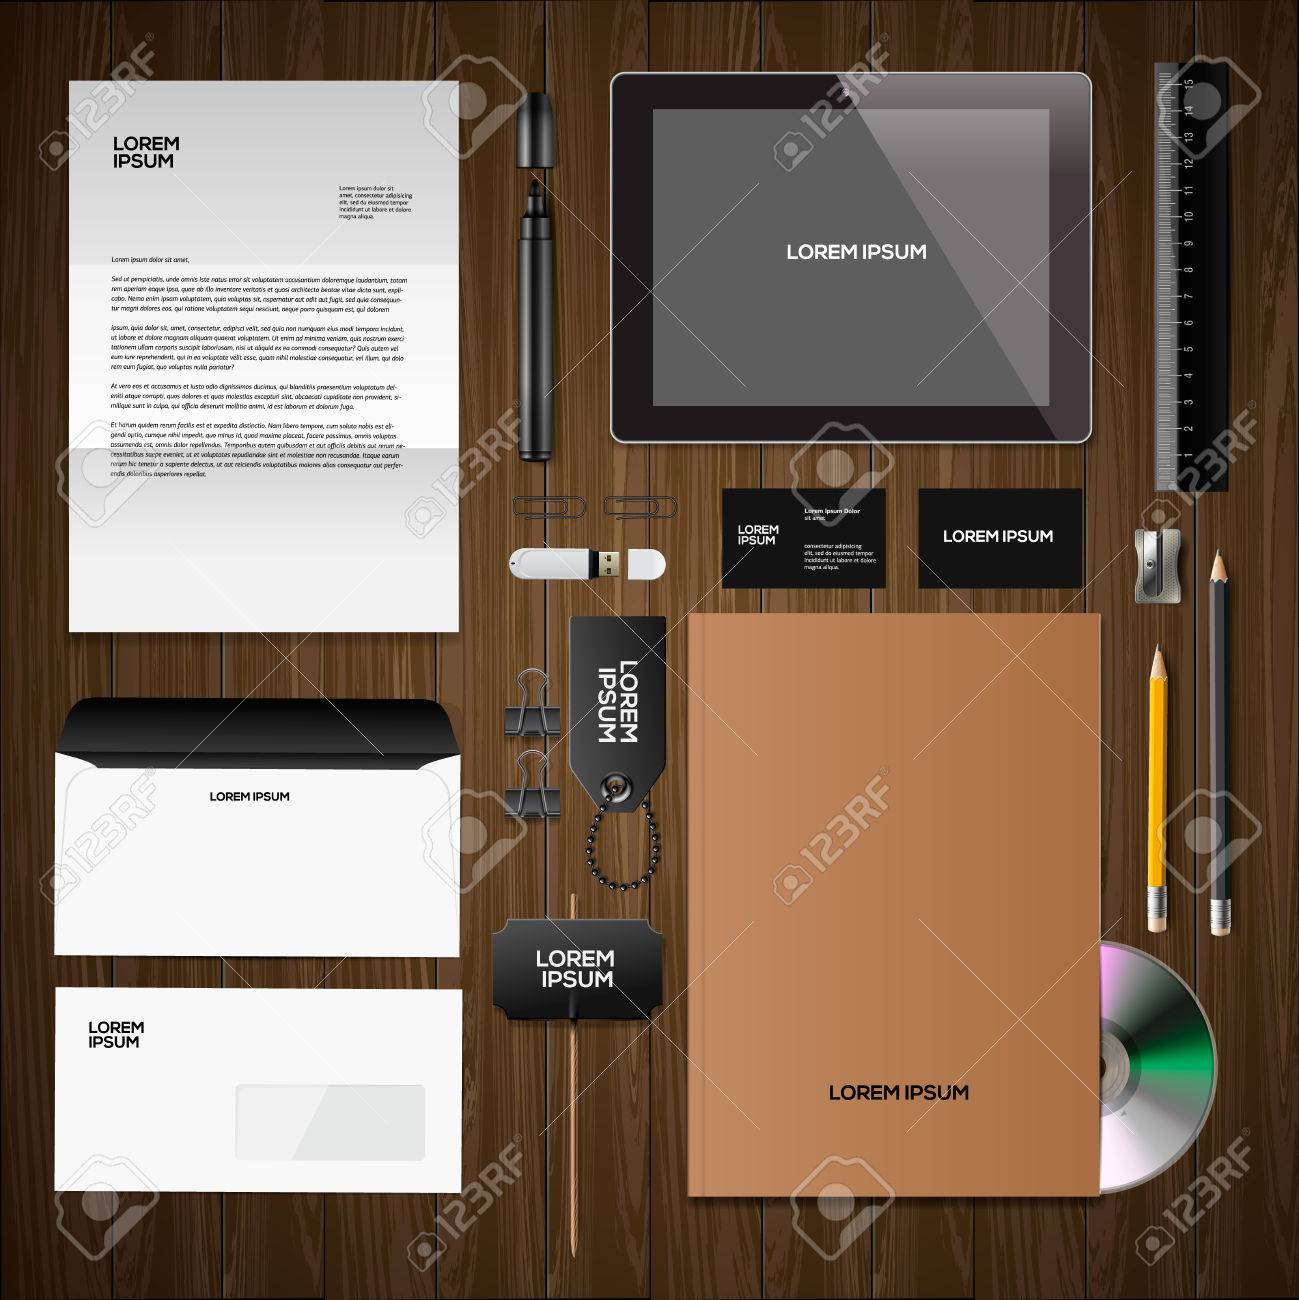 Corporate identity mock-up: blank, business cards, disk, notepad, pen, envelope, badge, stationery, brand-book, portable console, tablet pc. Stock Vector - 27714087